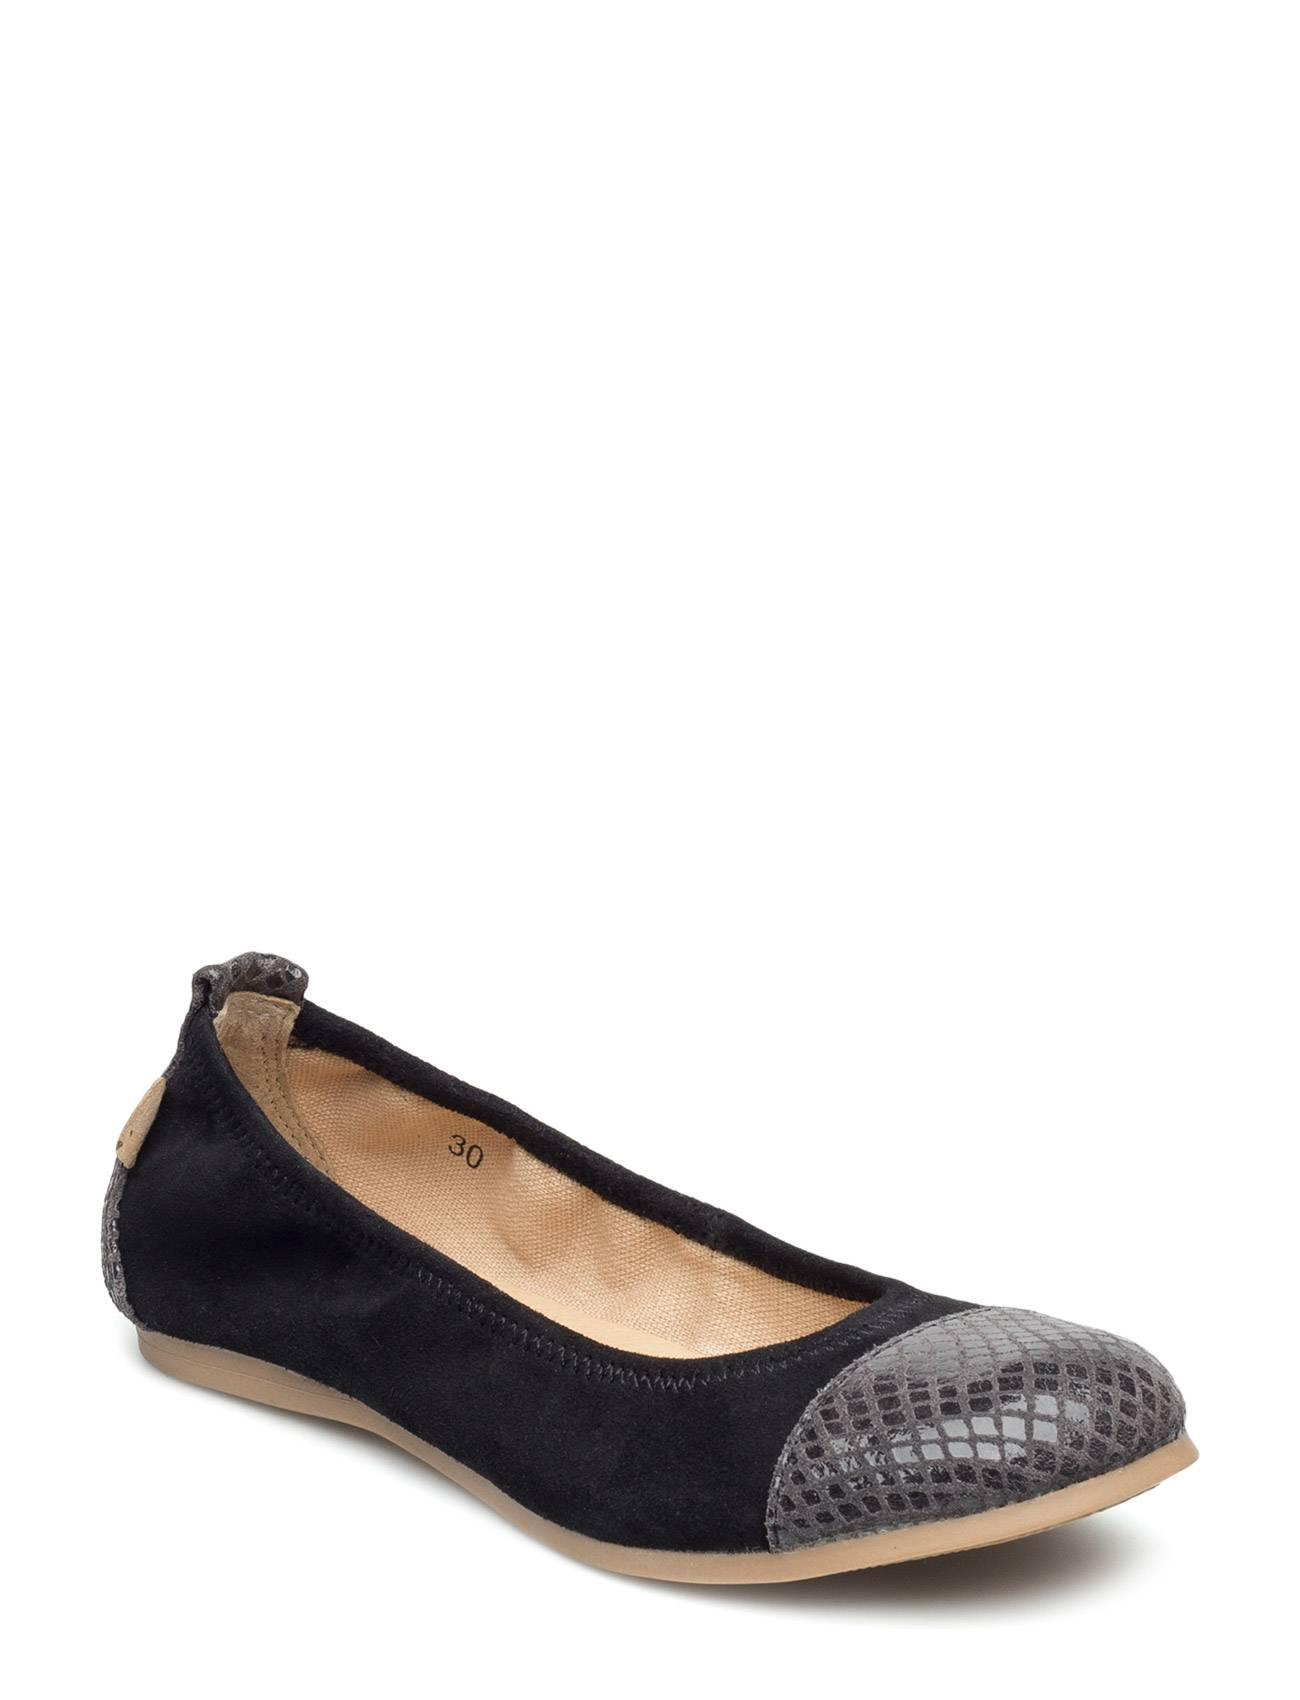 Move by Melton Ballerina Toe Cap